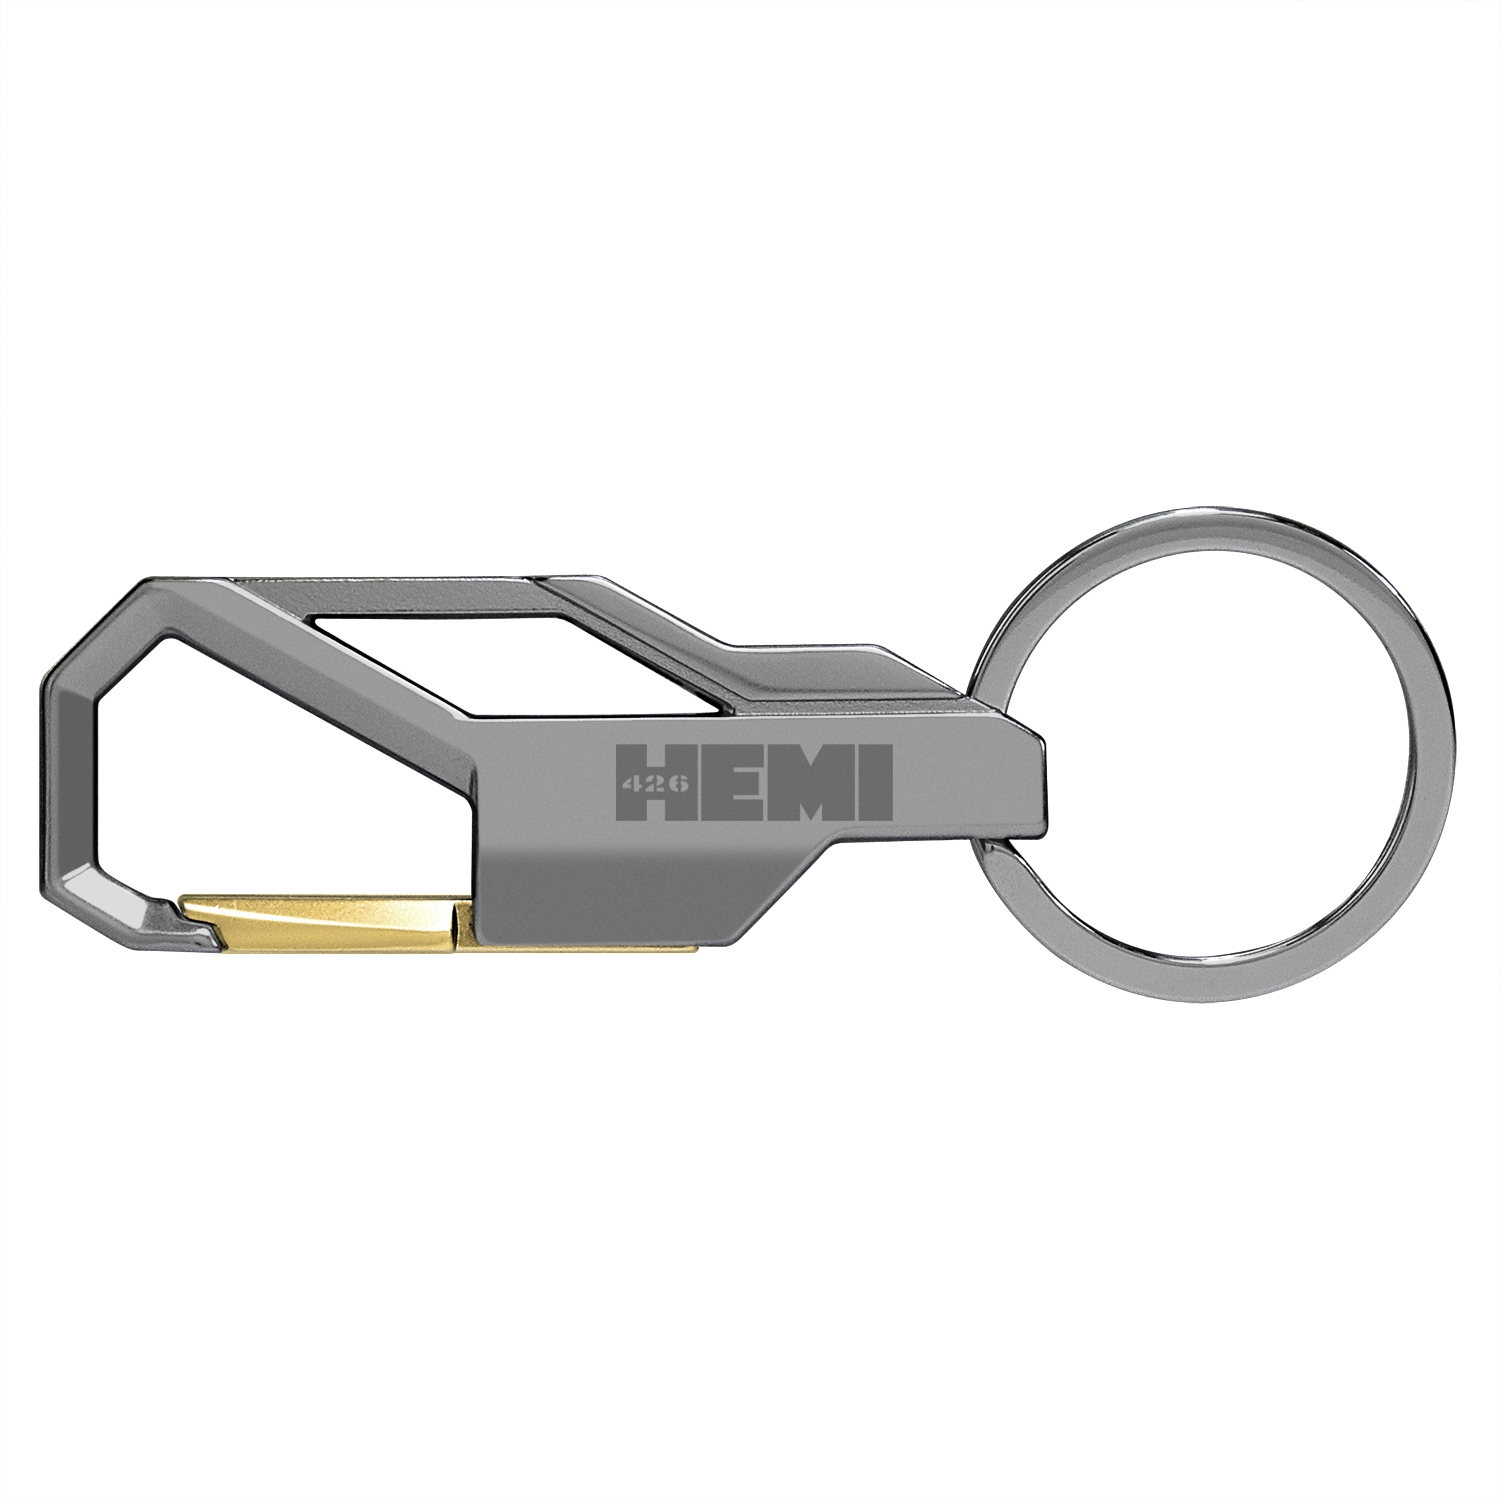 HEMI 426 in HEMI Gunmetal Gray Snap Hook Metal Key Chain